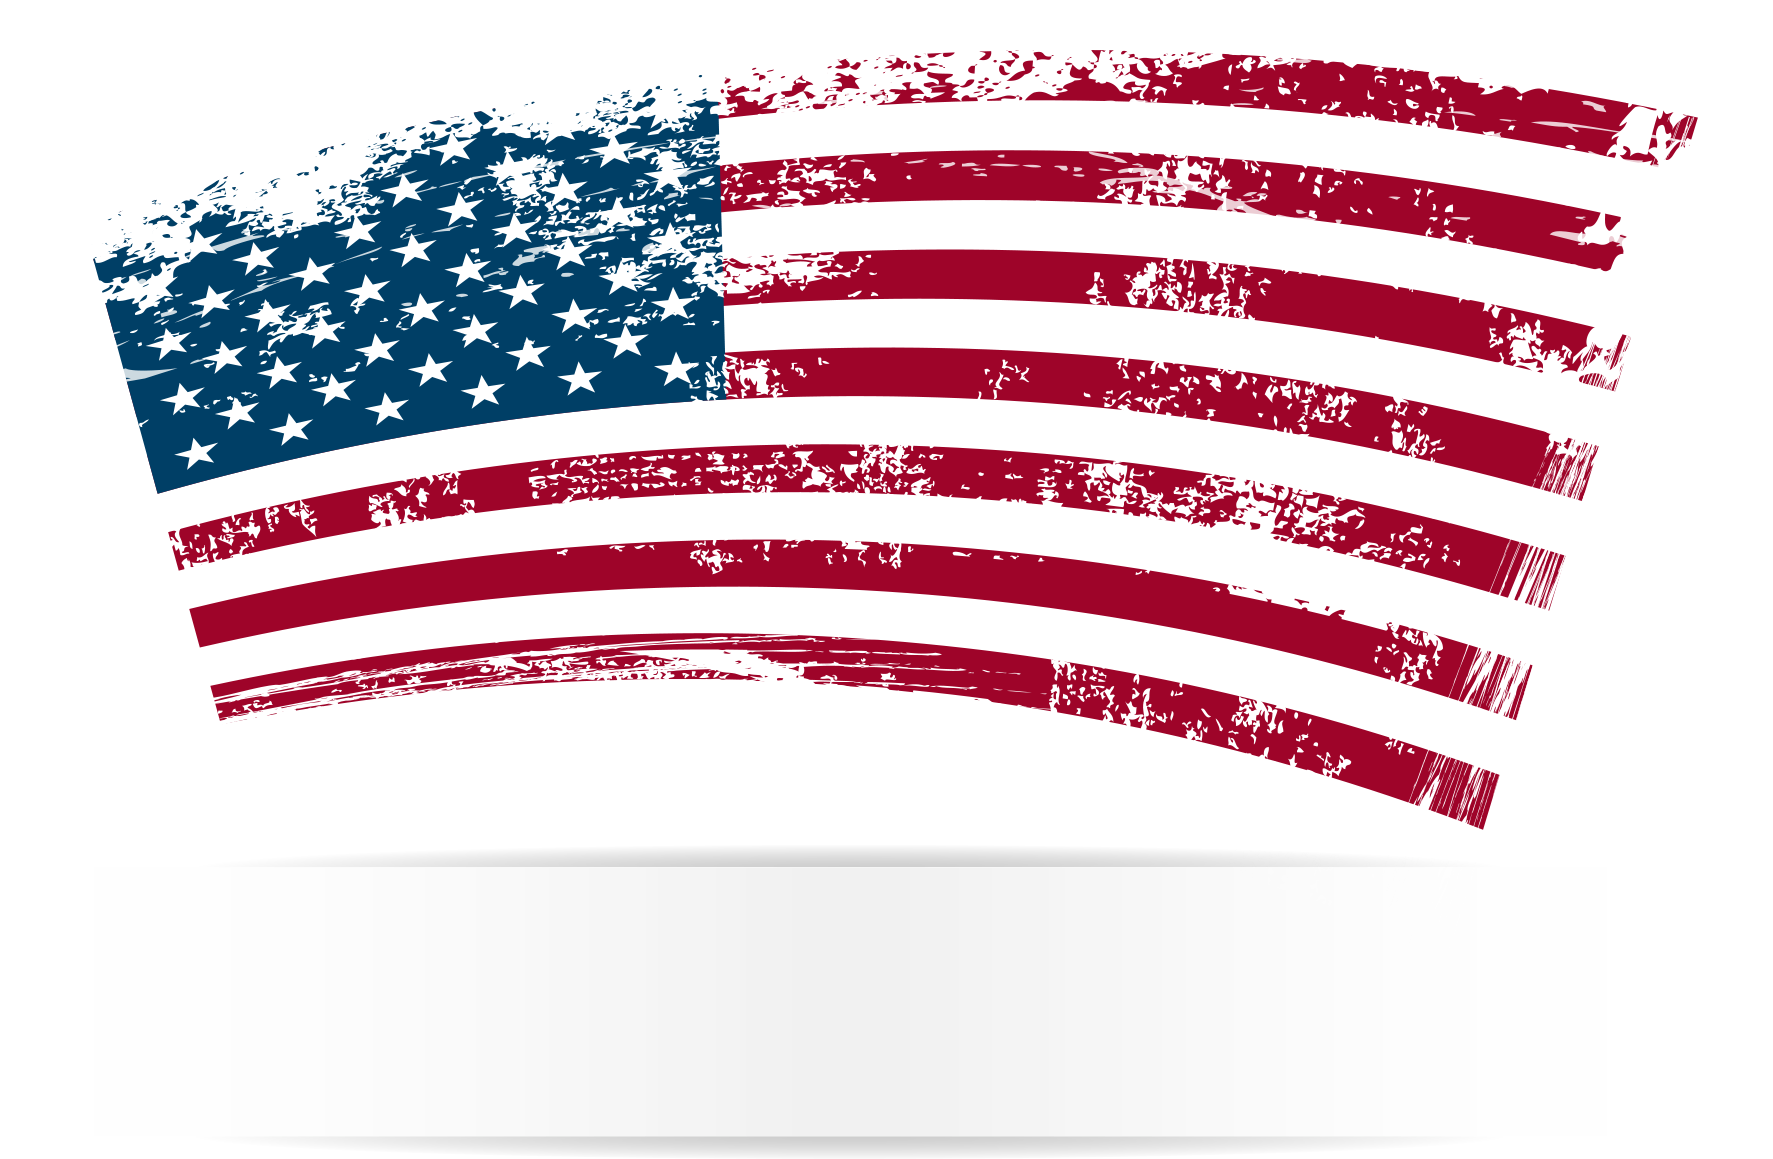 American flag vector png. Lotion spray bottle high